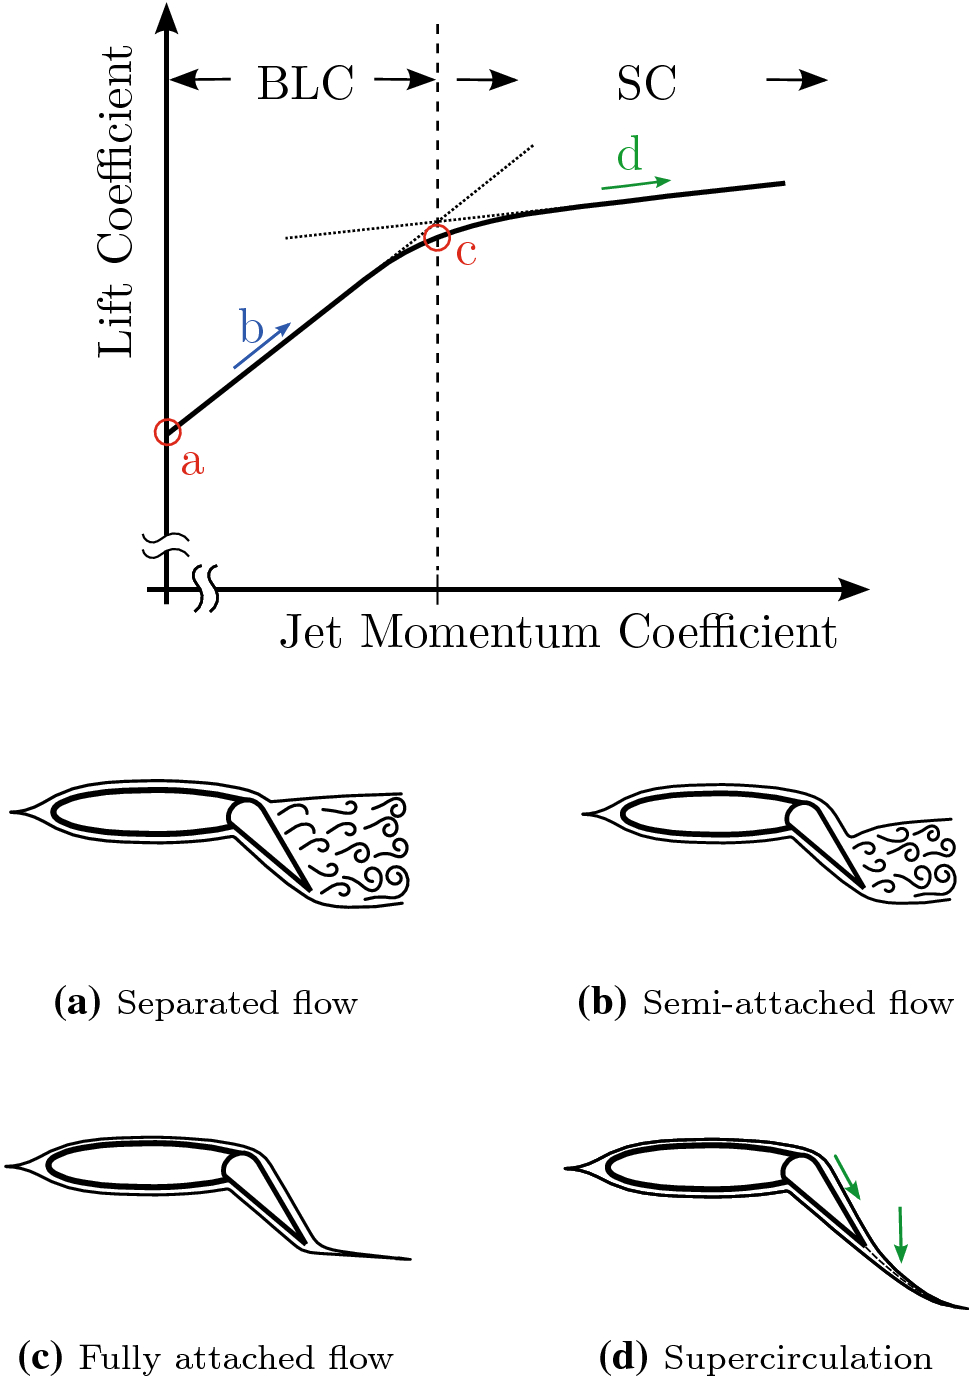 controllability of an aircraft with active high lift system using a boat engine diagram open image in new window